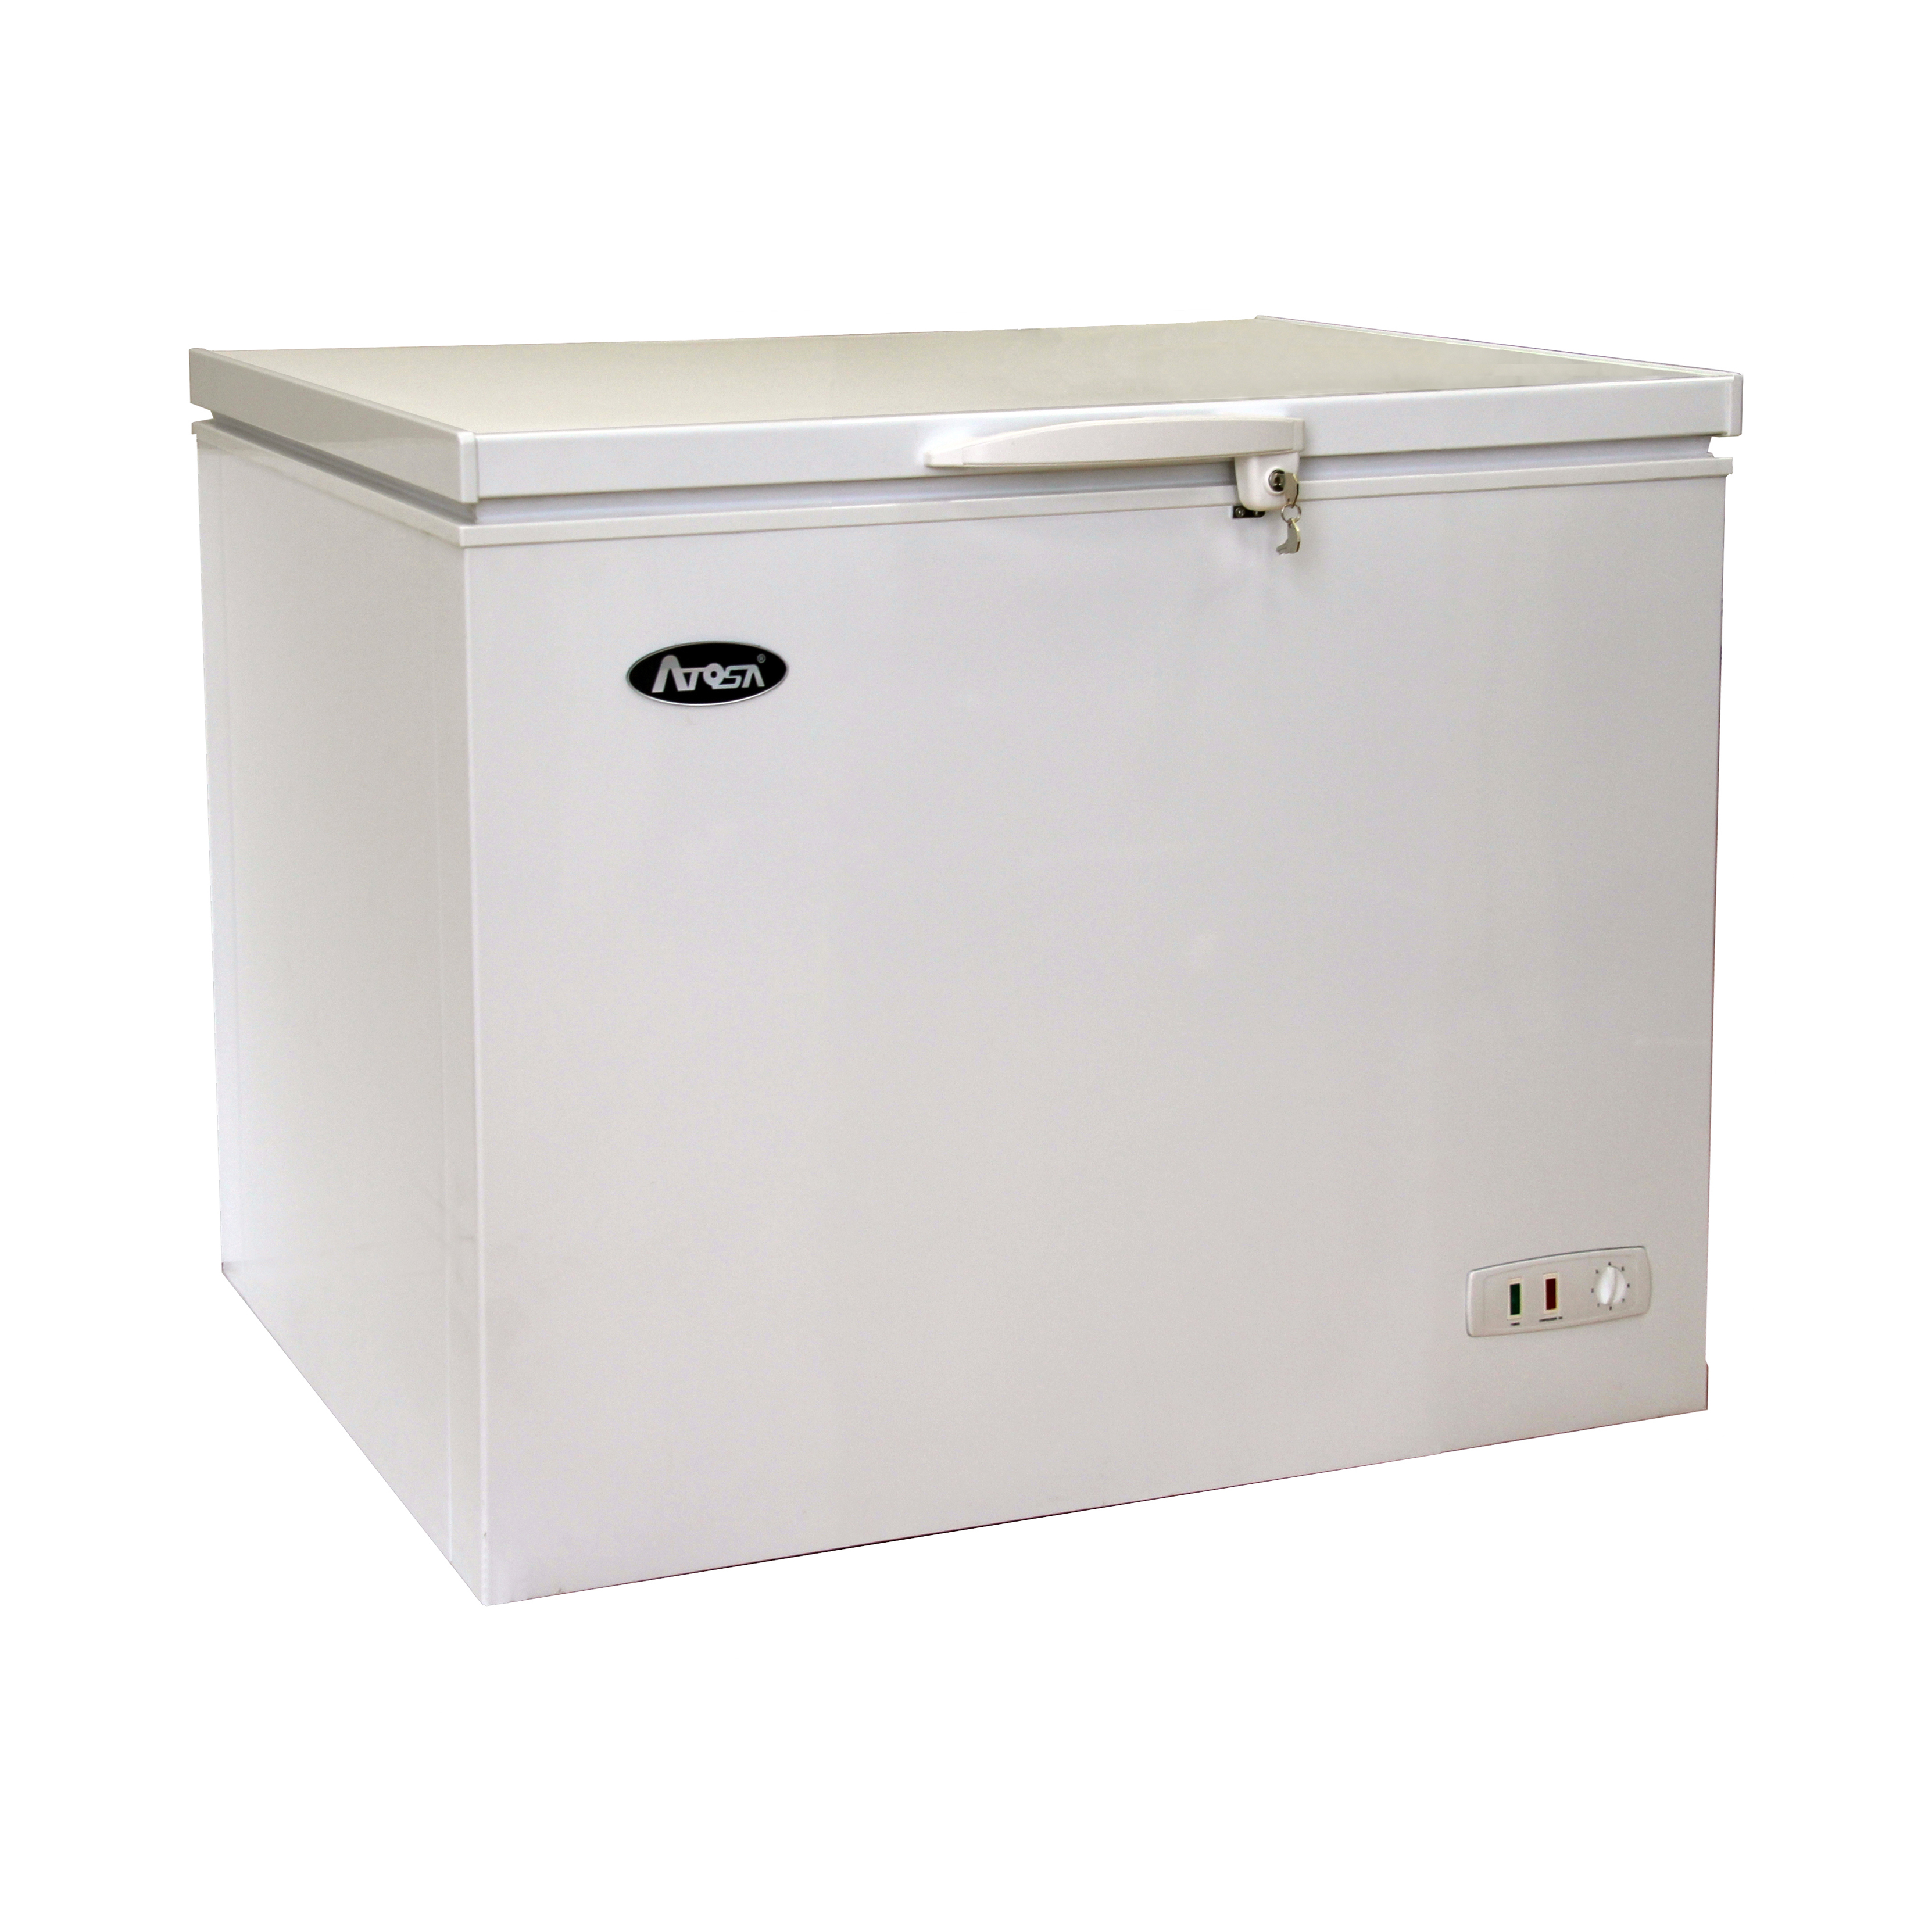 Atosa Chest Type Freezers Cover Image